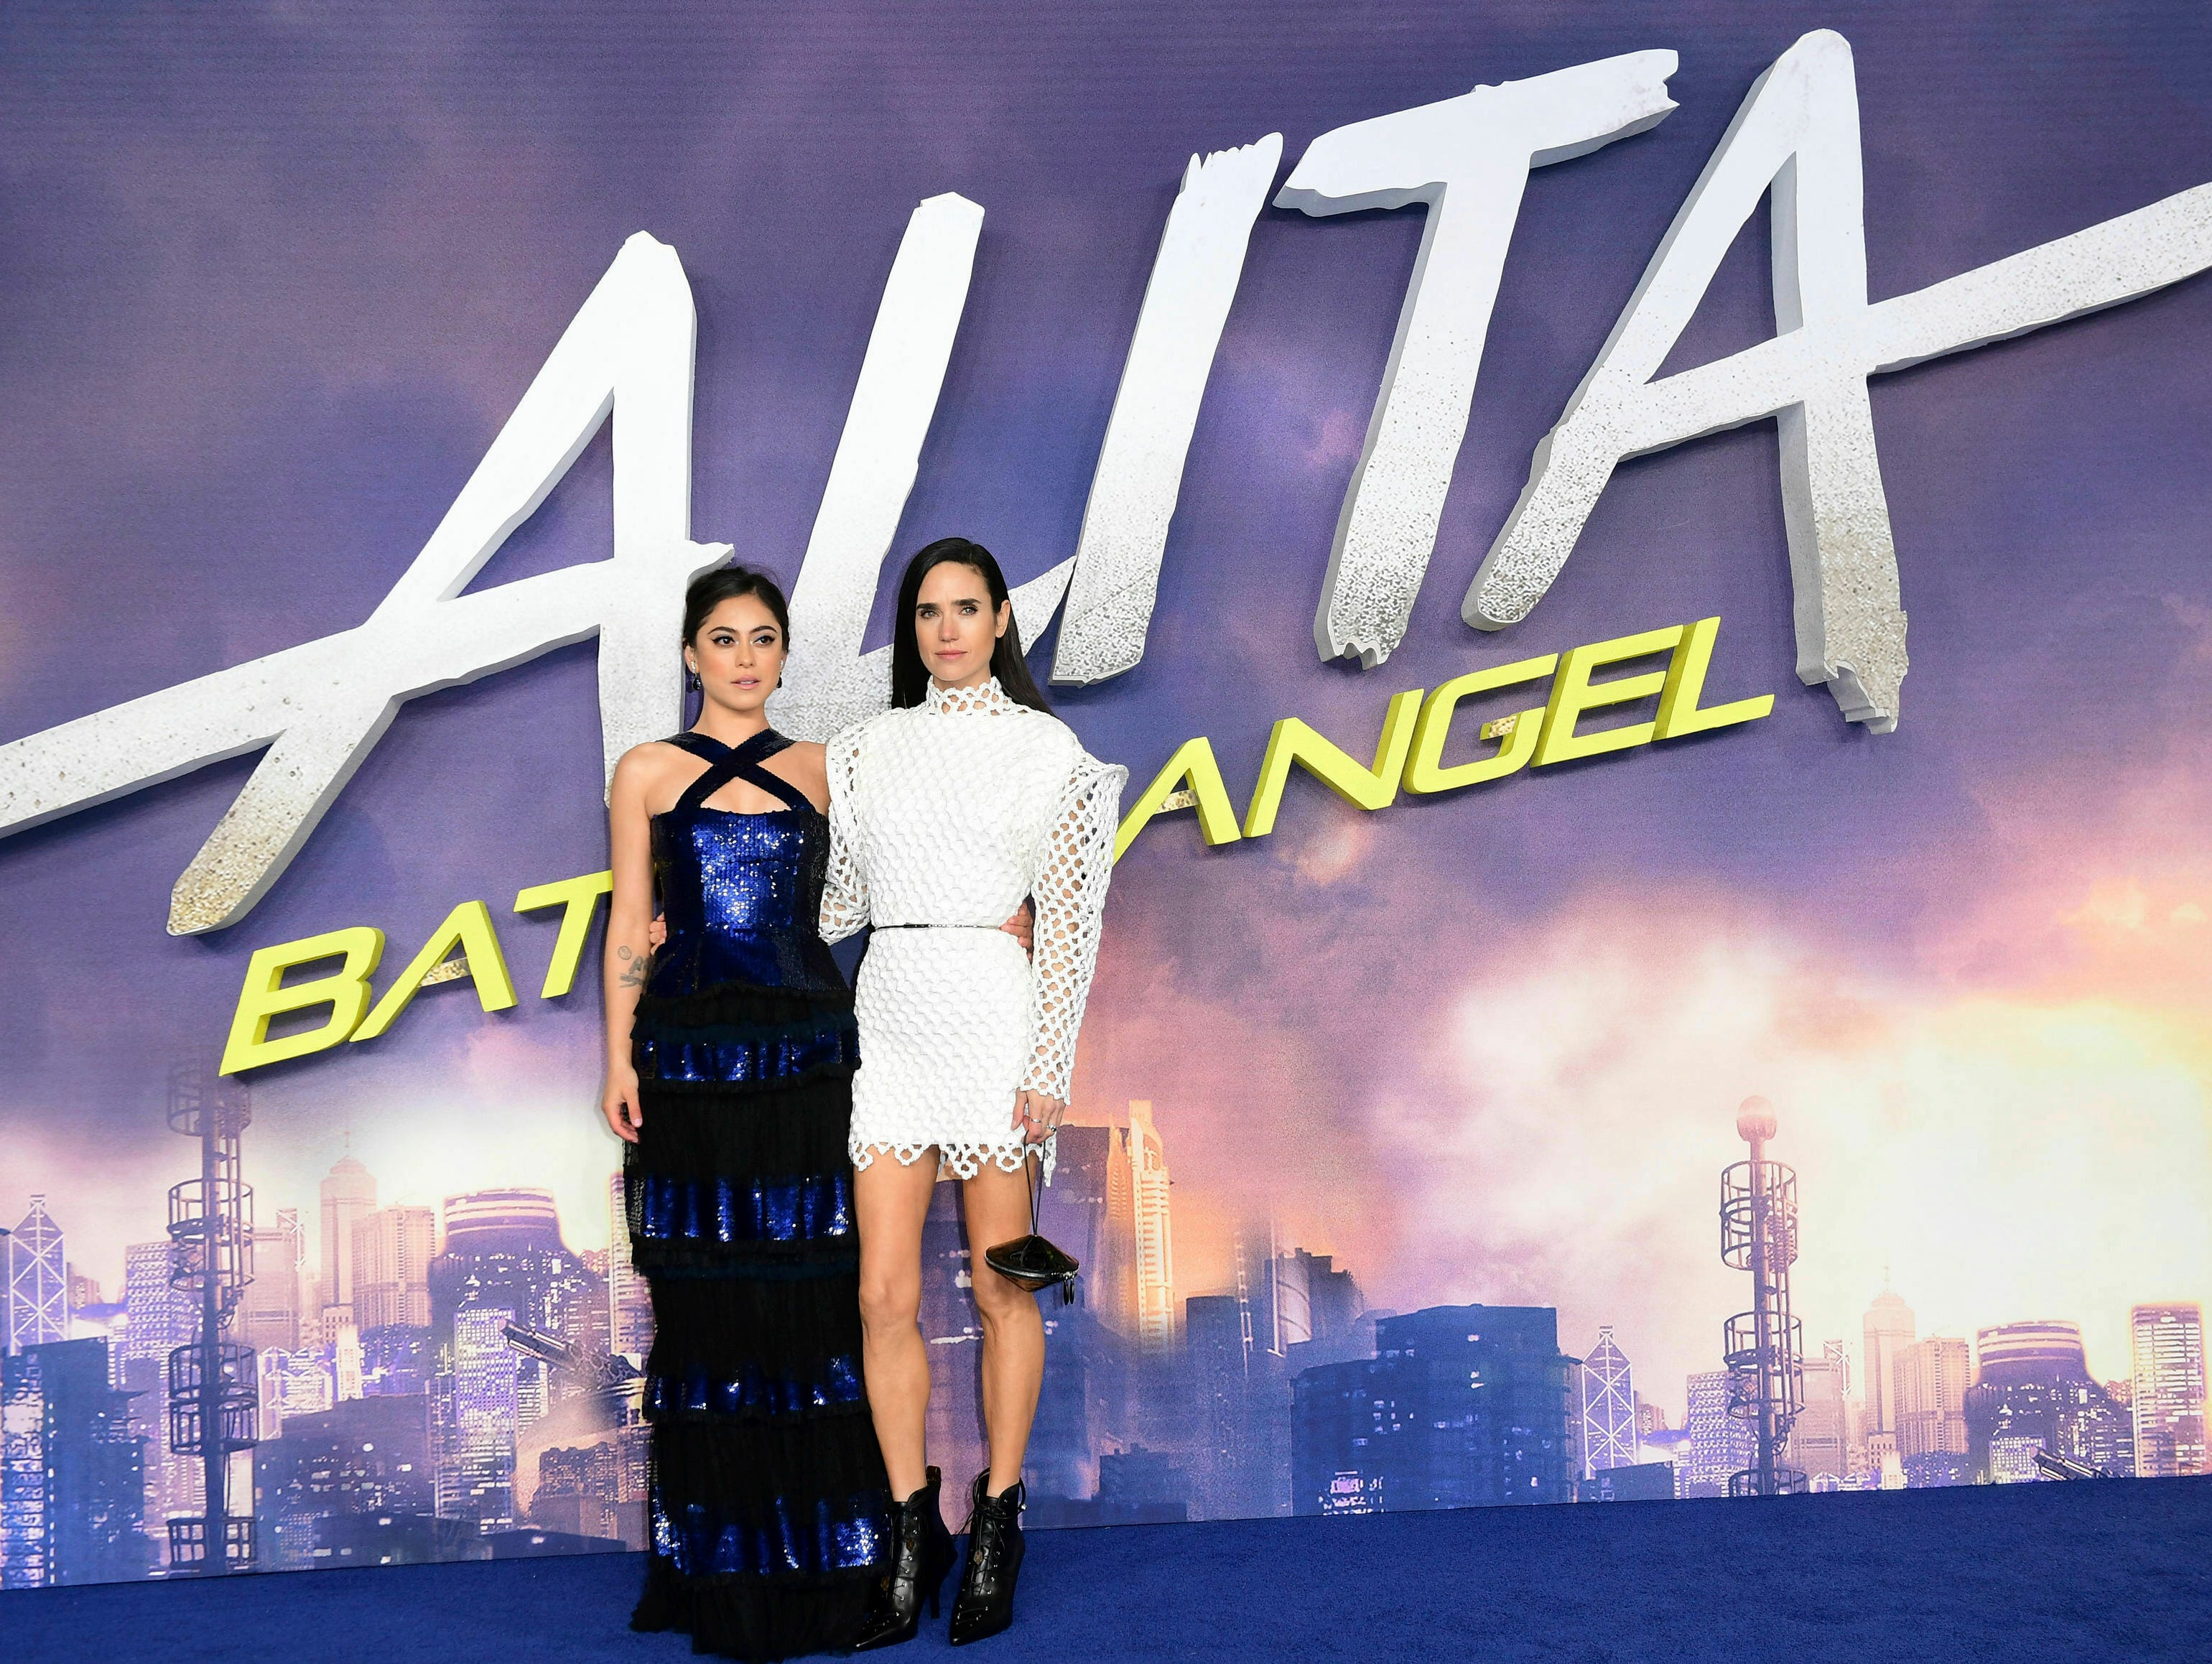 "Actresse Rosa Salazar, left, and Jennifer Connolly pose for the media at the world premiere of ""Alita: Battle Angel"" in central London, Thursday, Jan. 31, 2019."